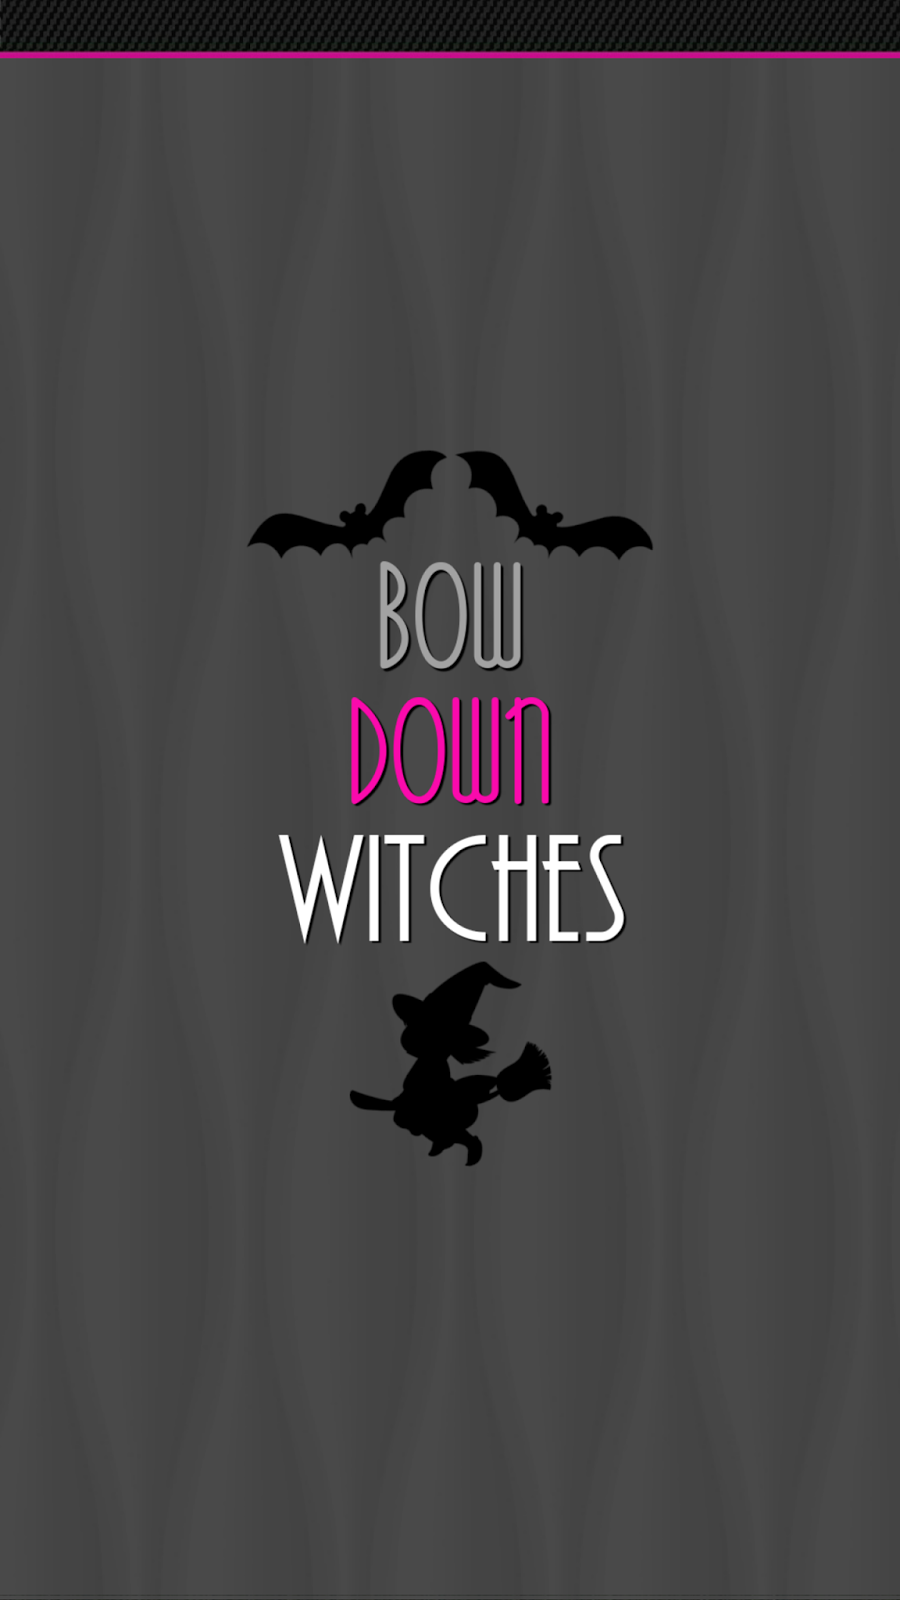 Pin By Sofia On Wallpaper Vol 19 Halloween Wallpaper Iphone Halloween Wallpaper Witch Wallpaper